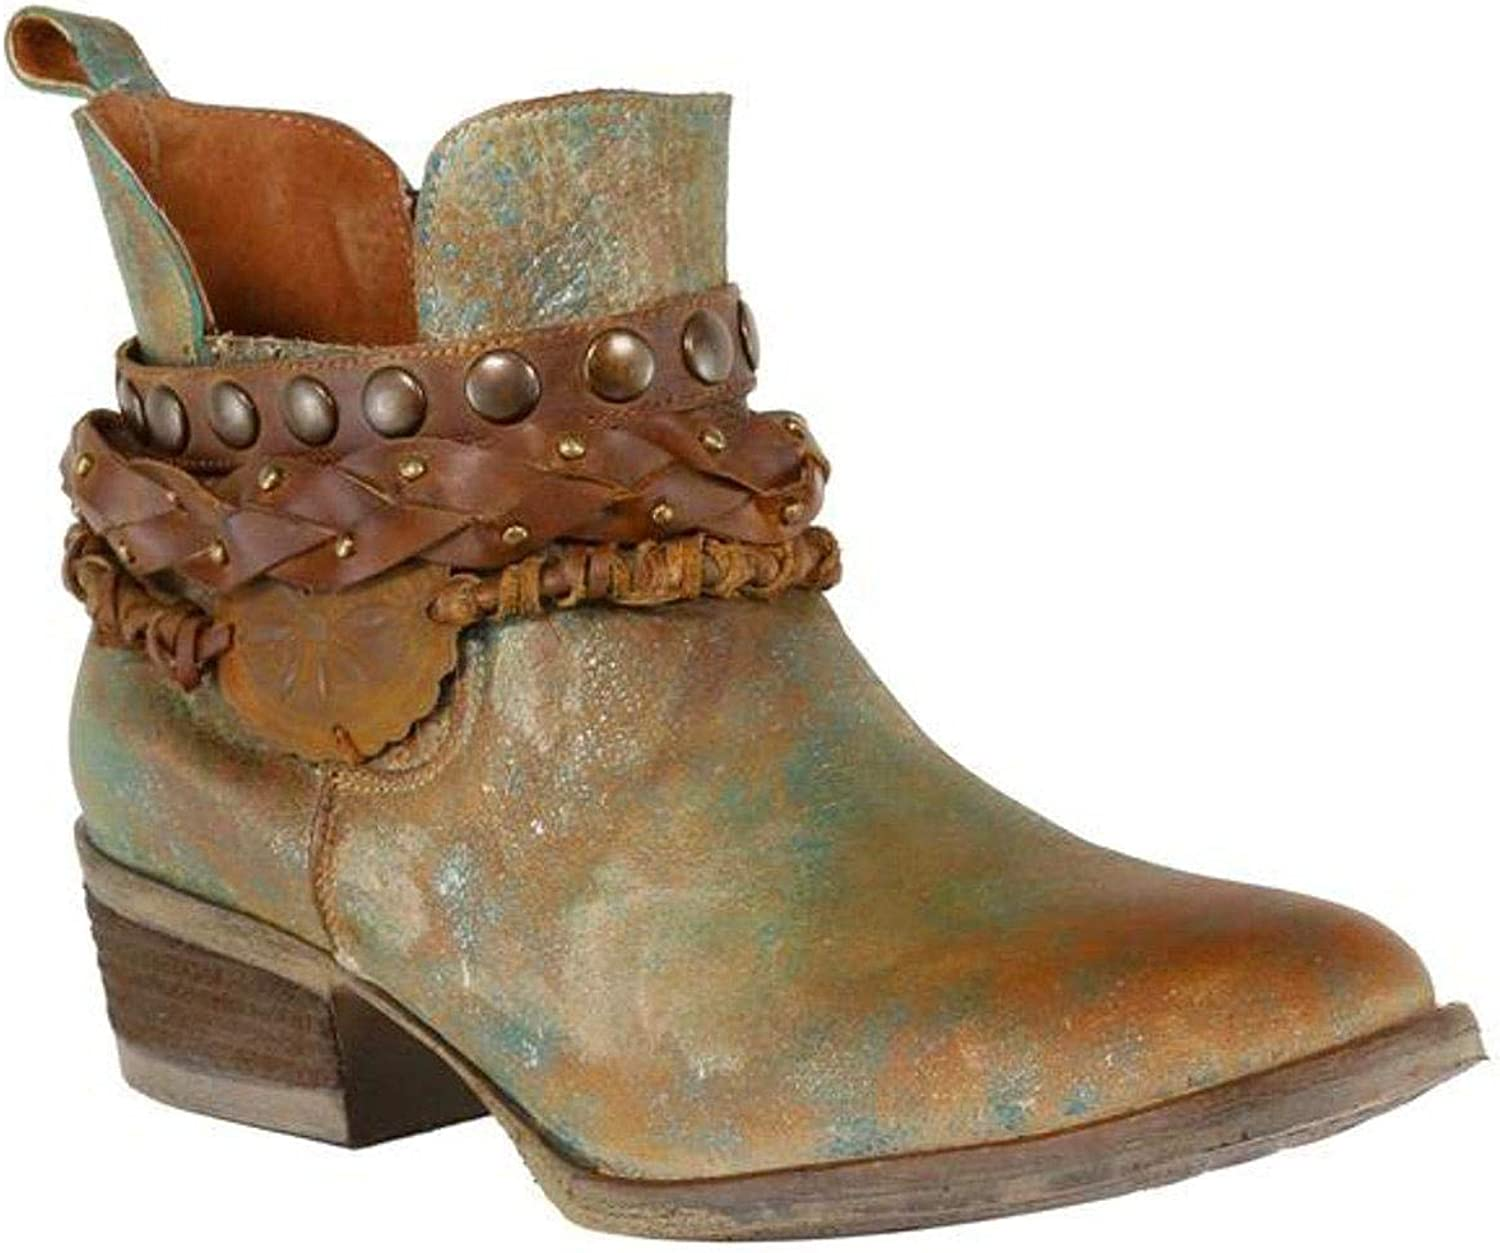 Corral Women's Green Harness & Stud Details Round Toe Leather Western Ankle Cowboy Boots - Sizes 5-12 B